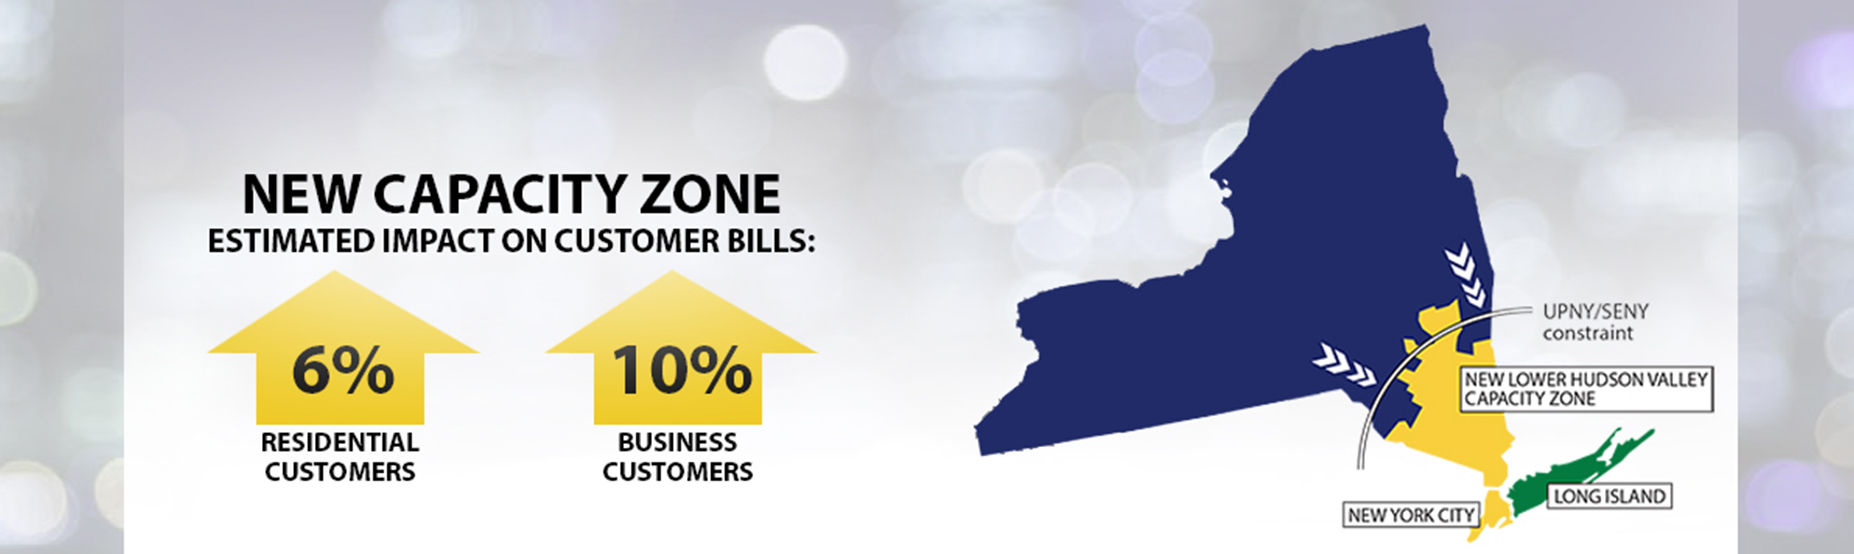 Graphic showing location of the lower NY capacity zone